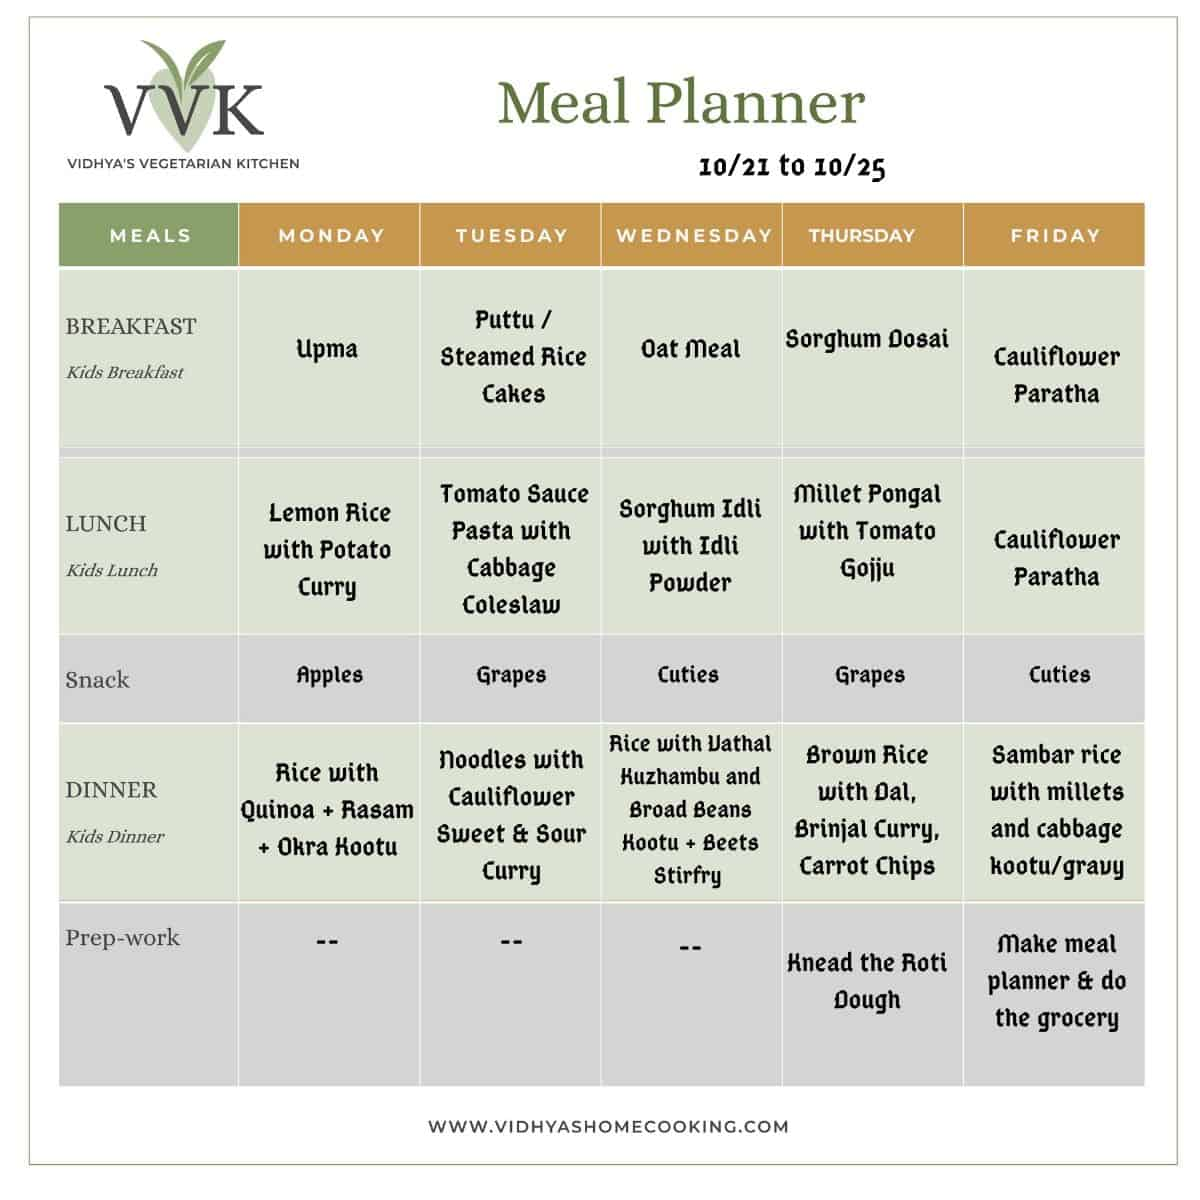 meal planner with millet options